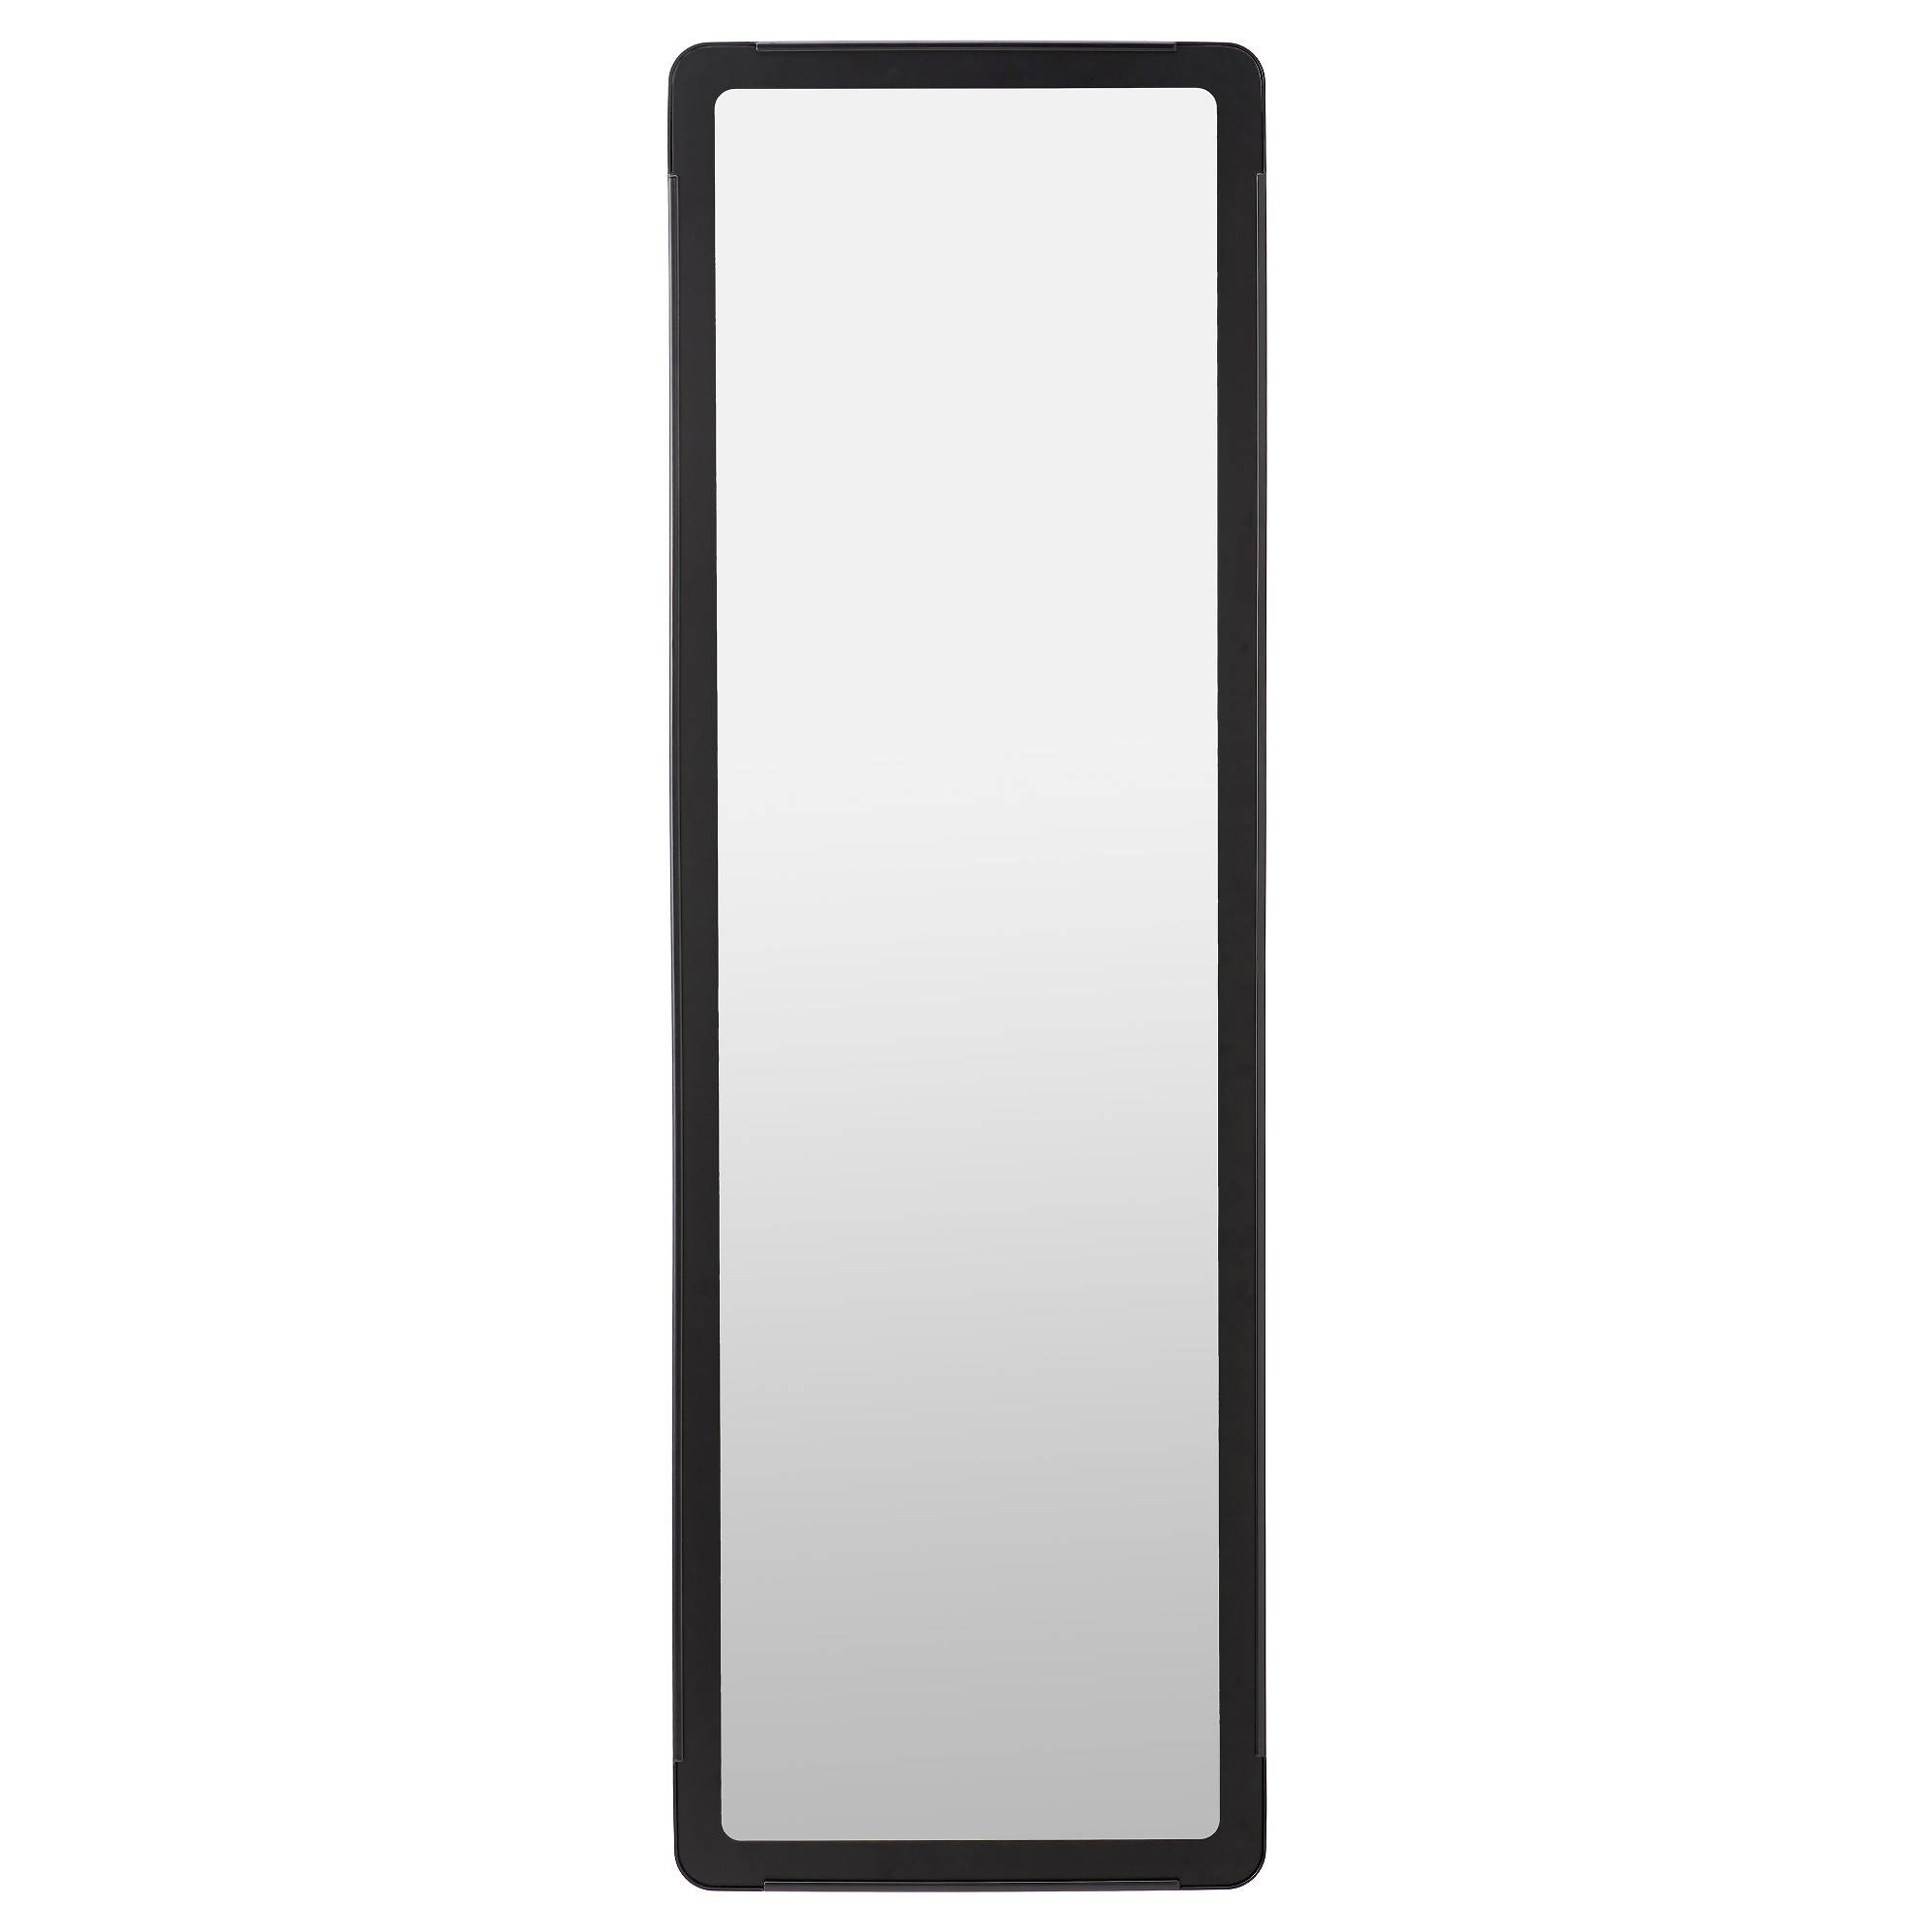 Full-Length Mirrors - Ikea within White Baroque Floor Mirrors (Image 18 of 25)